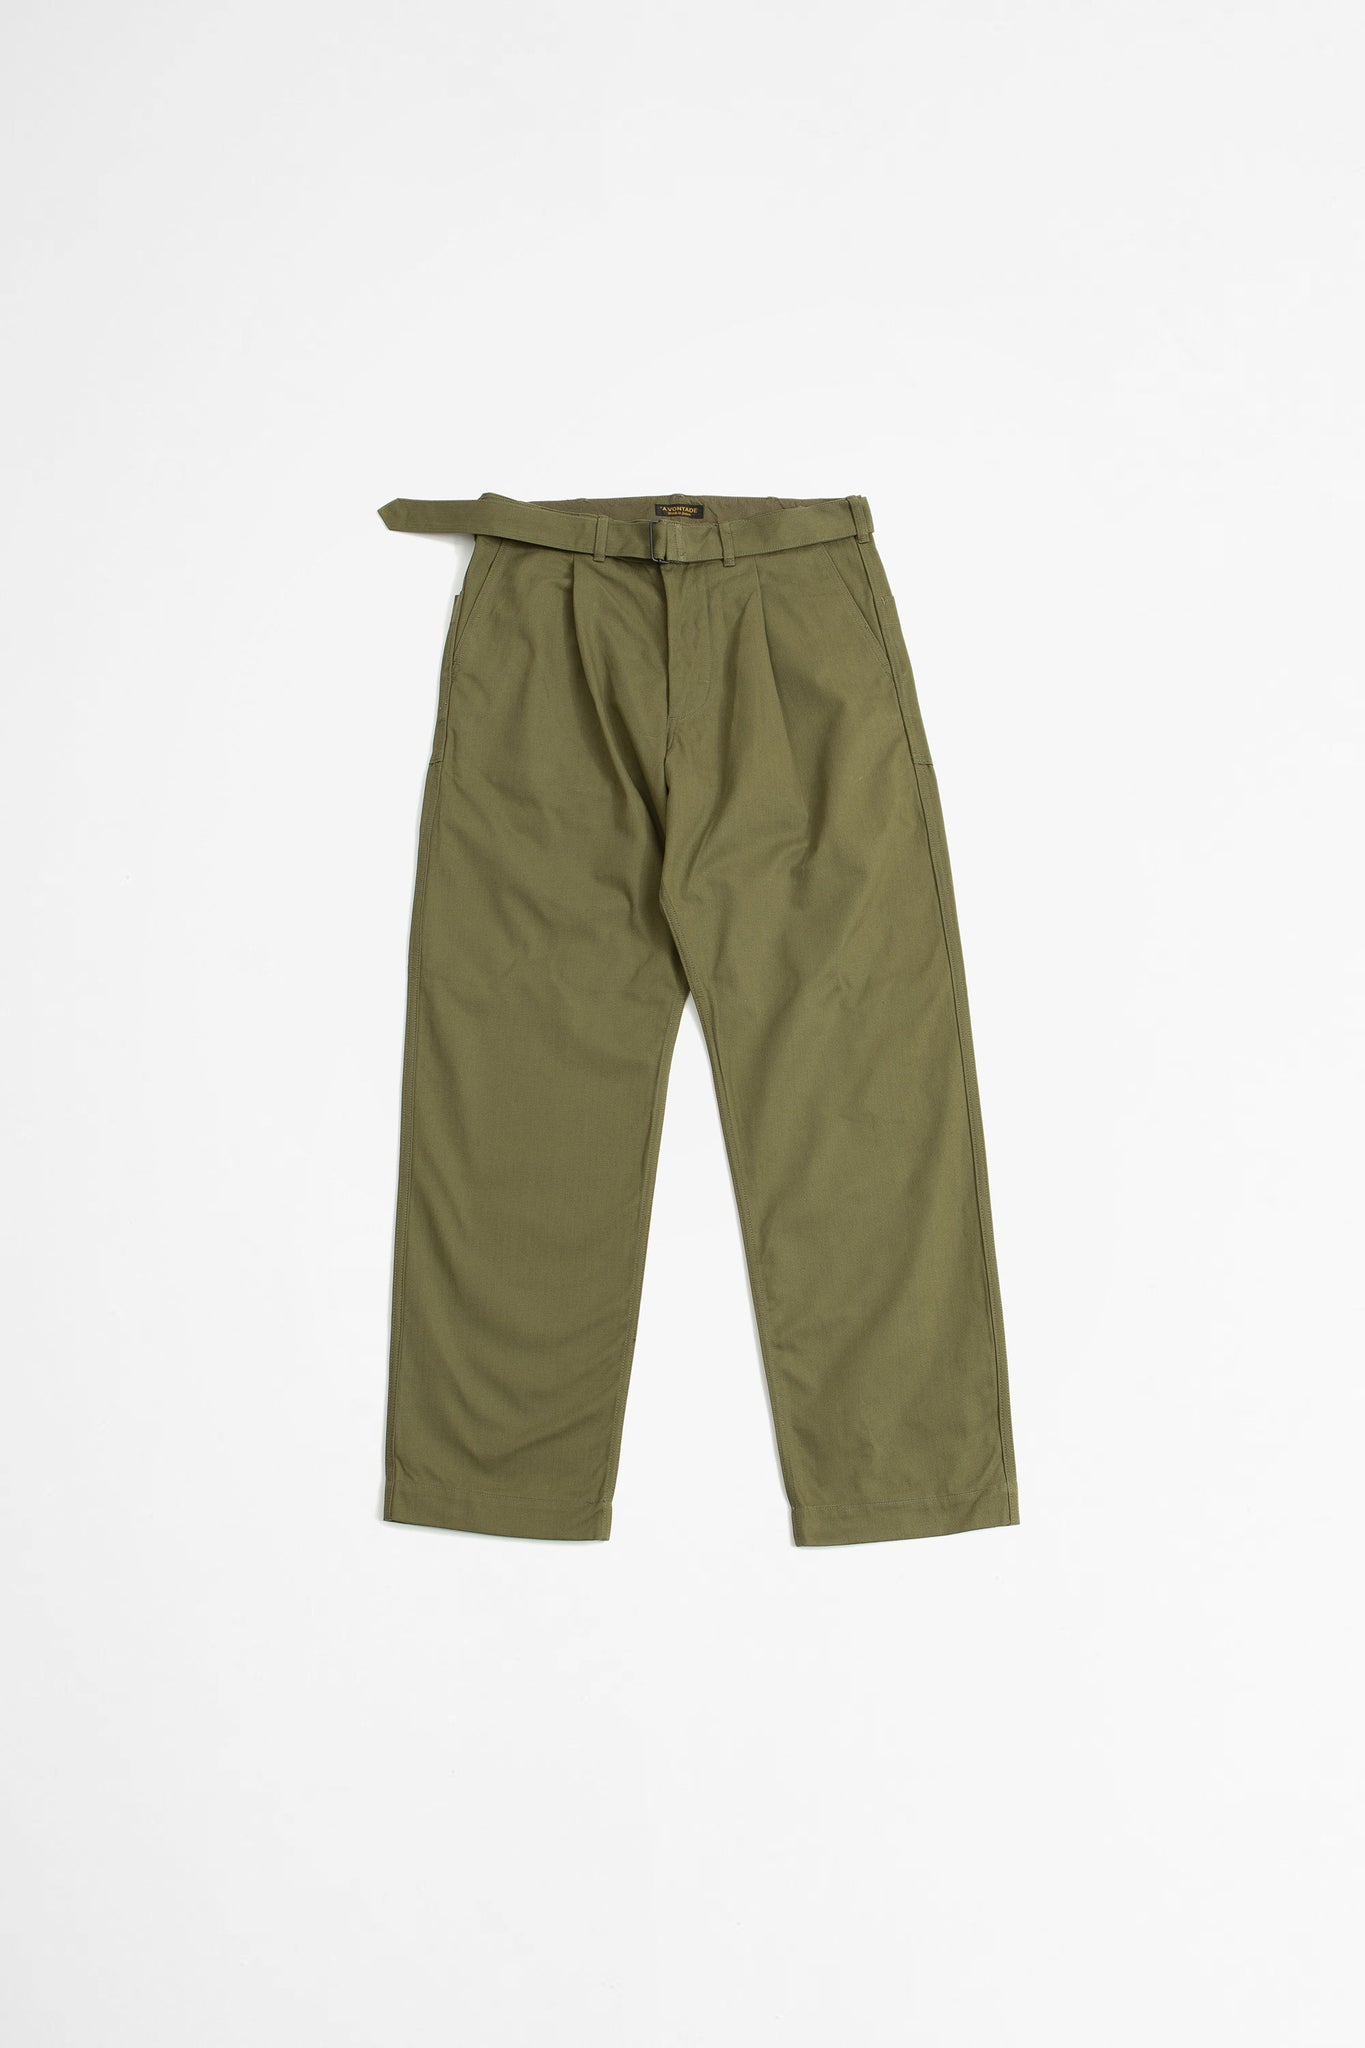 Mil. cookman trousers olive